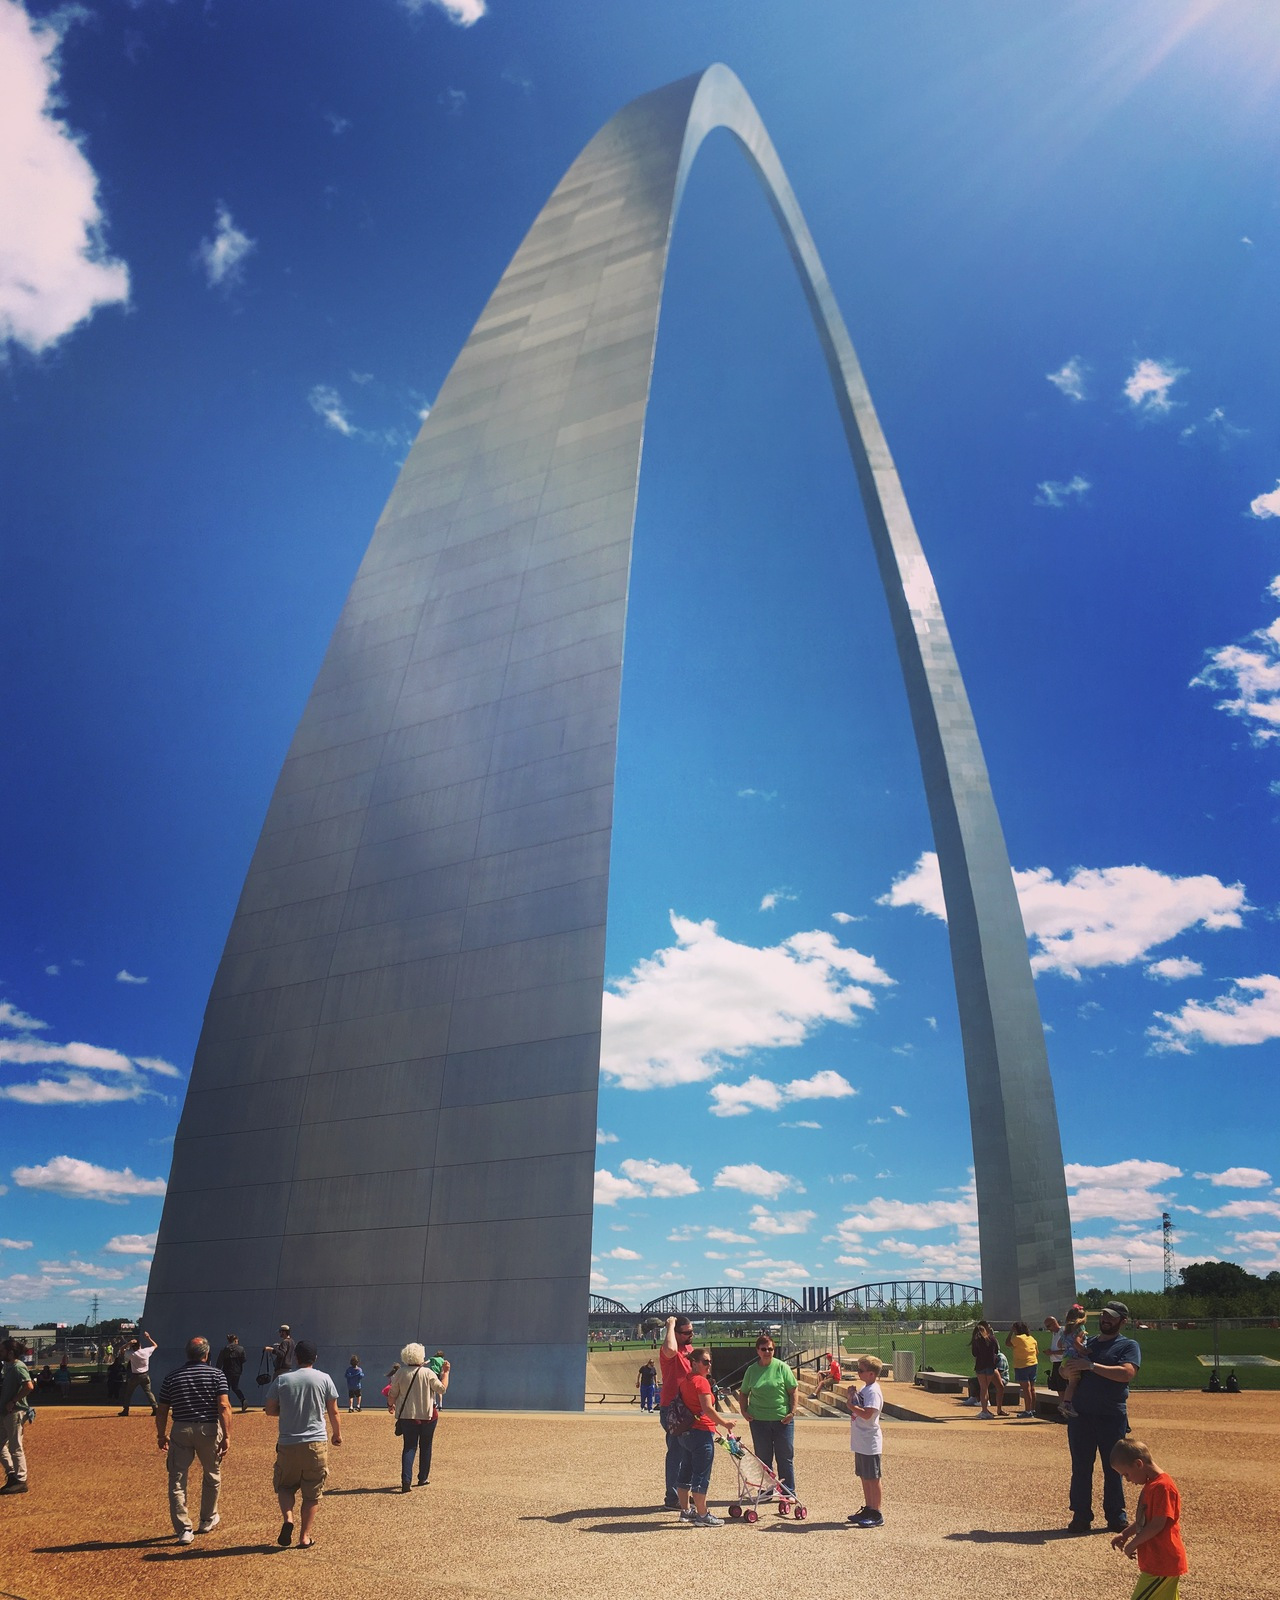 an introduction to the history of the gateway arch In his introduction campbell posits that the arch    represents a significant  that history, he suggests, remains vital to under-  there was the gateway.